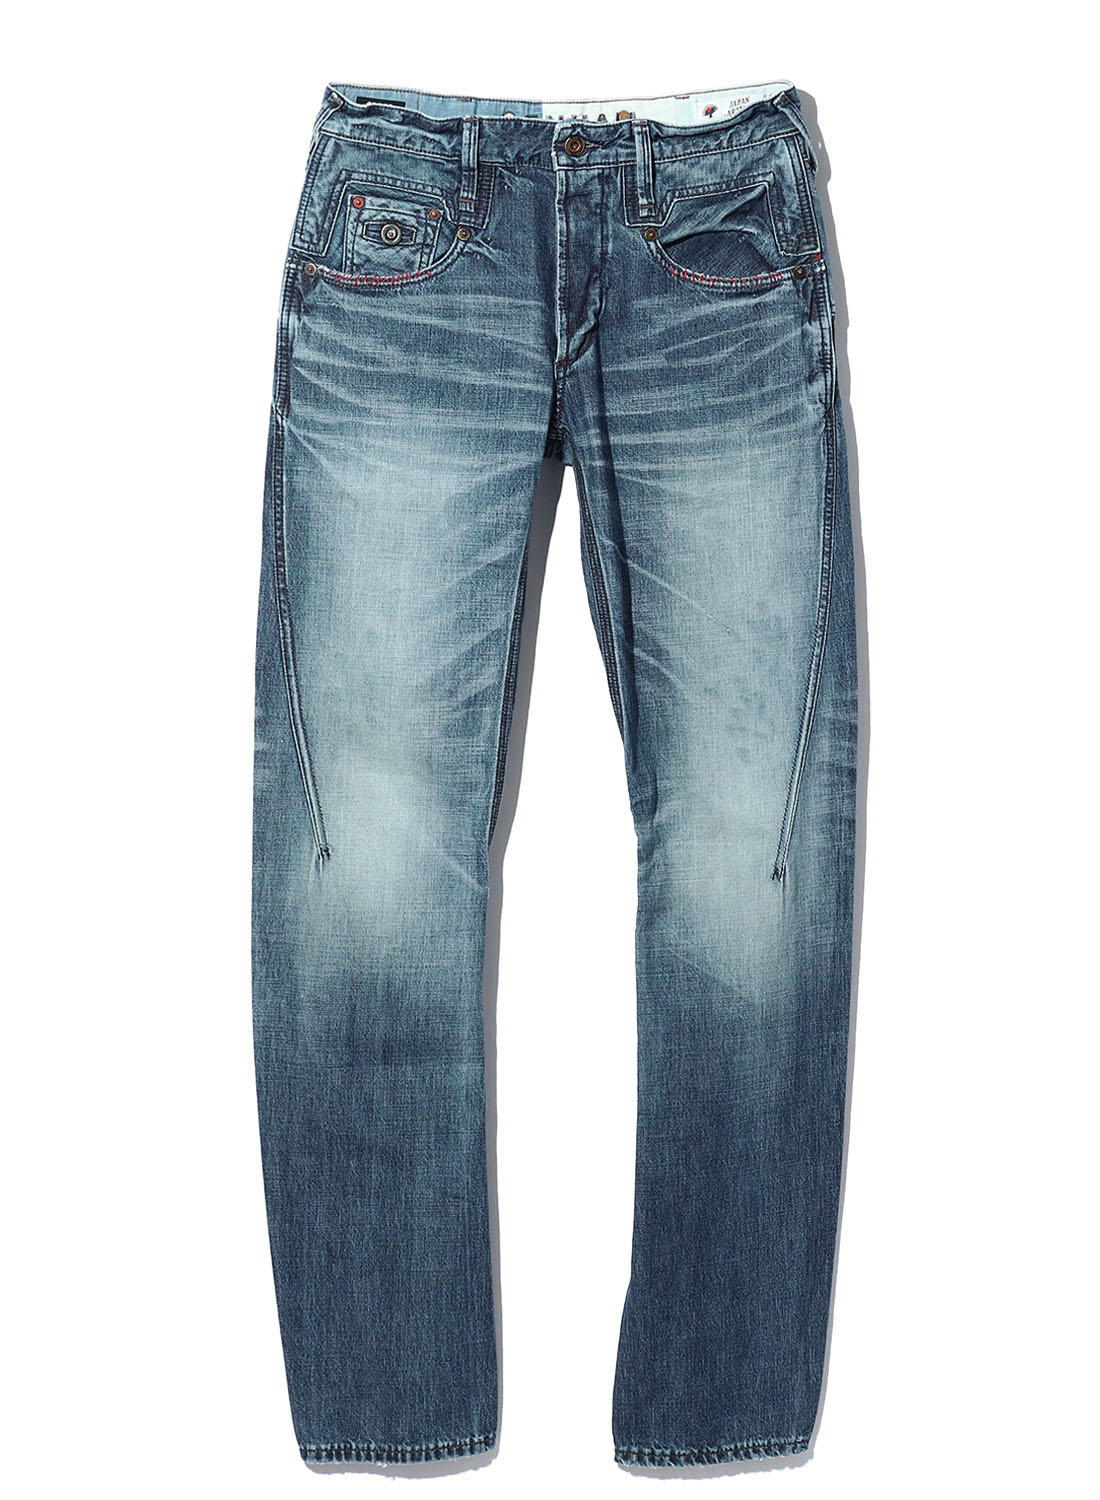 【JAPAN DENIM】 CROSSBACK JLWIW